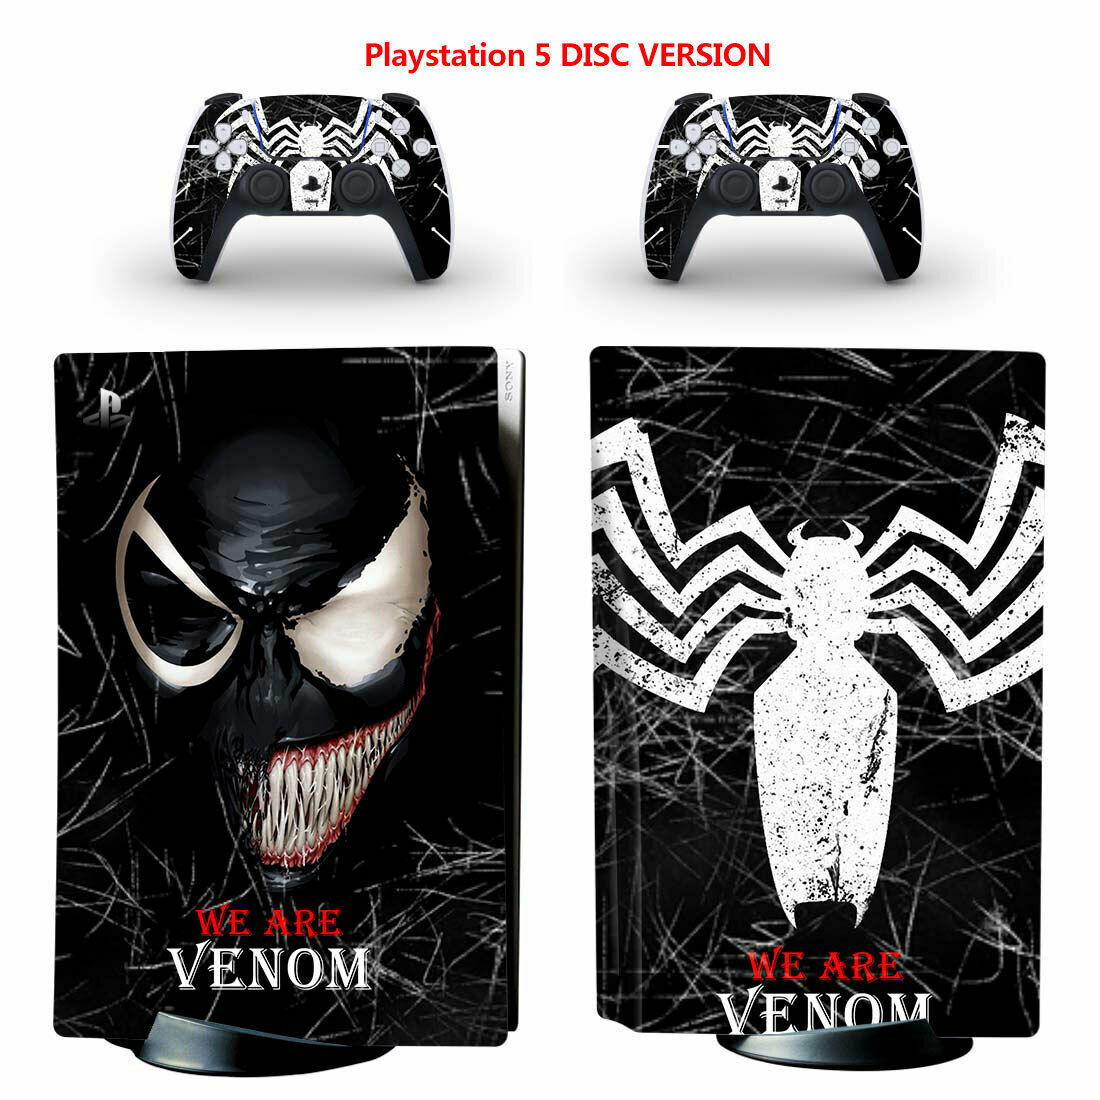 Venom Vinyl Skin Decal Sticker Cover Full Set for Sony PS5 Console Disc Version